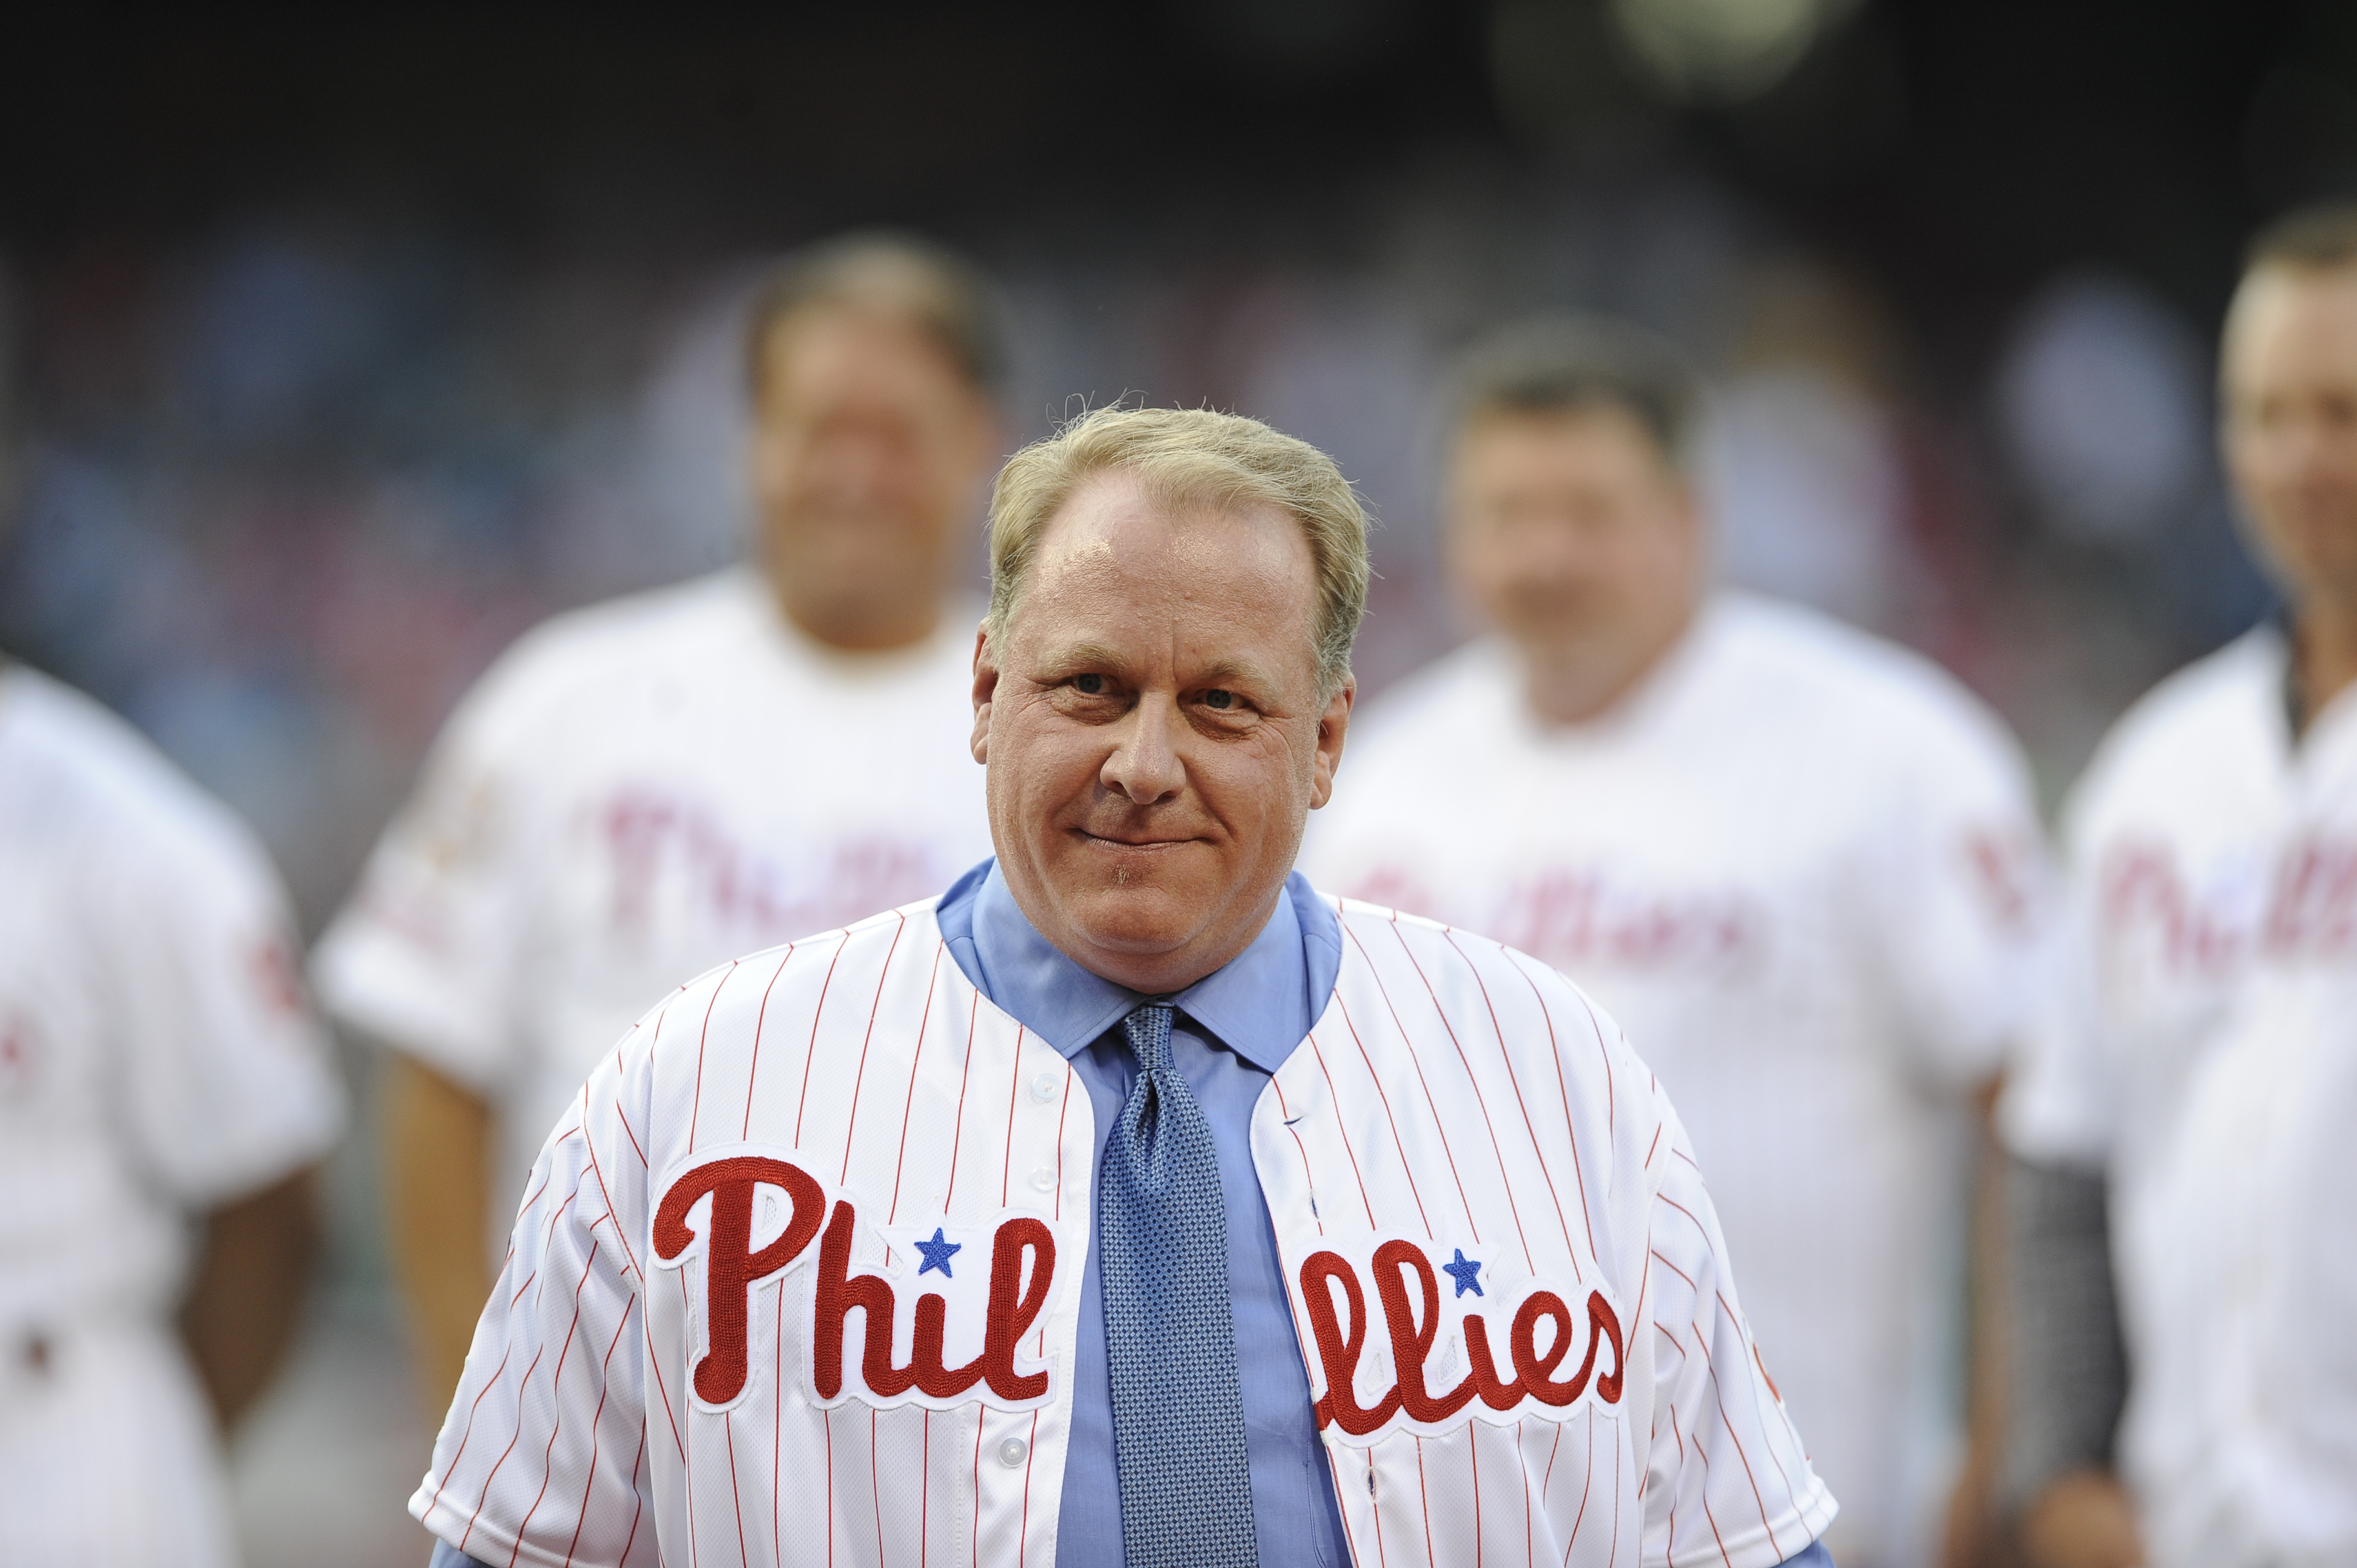 Former Philadelphia Phillies pitcher Curt Schilling is inducted into the Phillies Wall of Fame during a baseball game between the Philadelphia Phillies and the Atlanta Braves in Philadelphia.